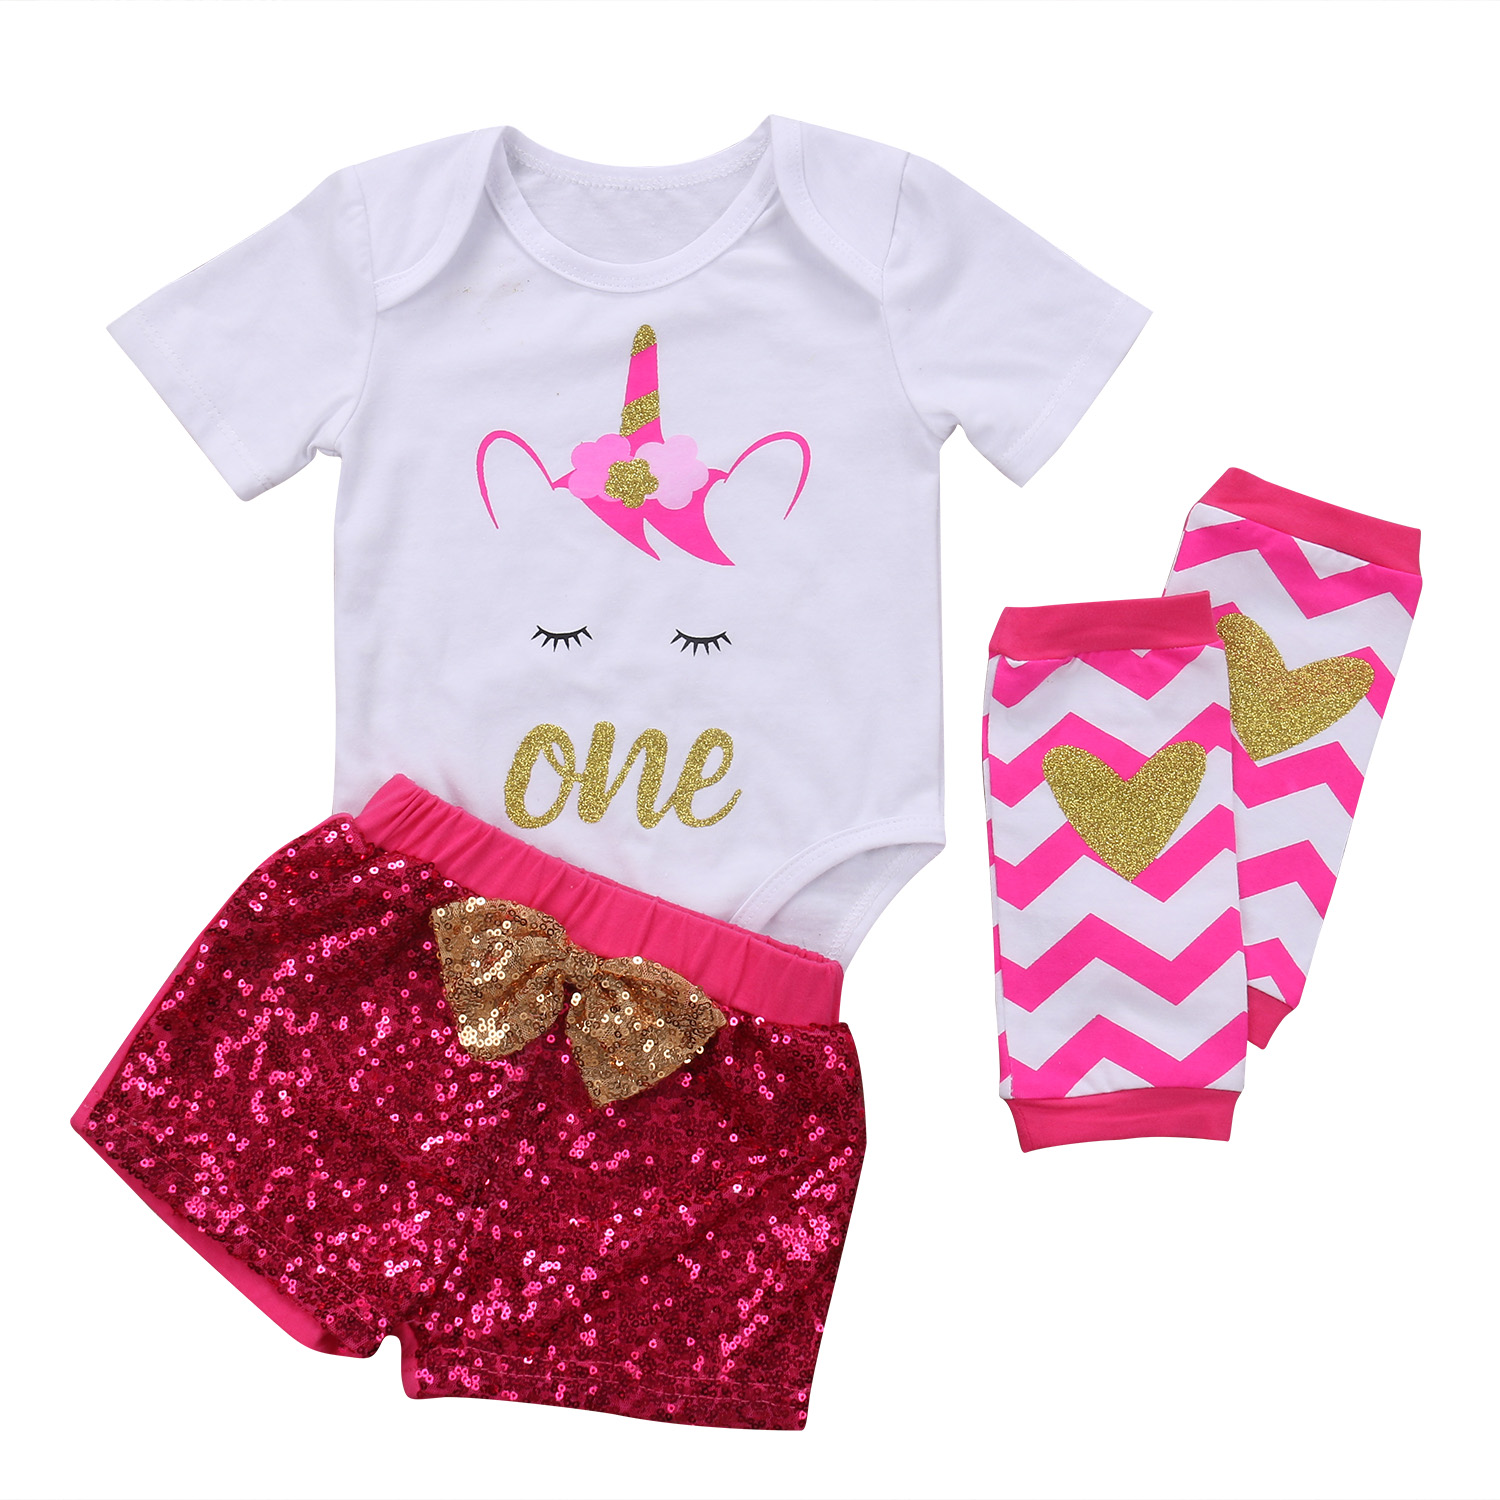 High Quality Infant Baby Girls Clothes Short Sleeve Tops Romper +Sequins Pants Outfits Baby Clothing Set 0 to 24M